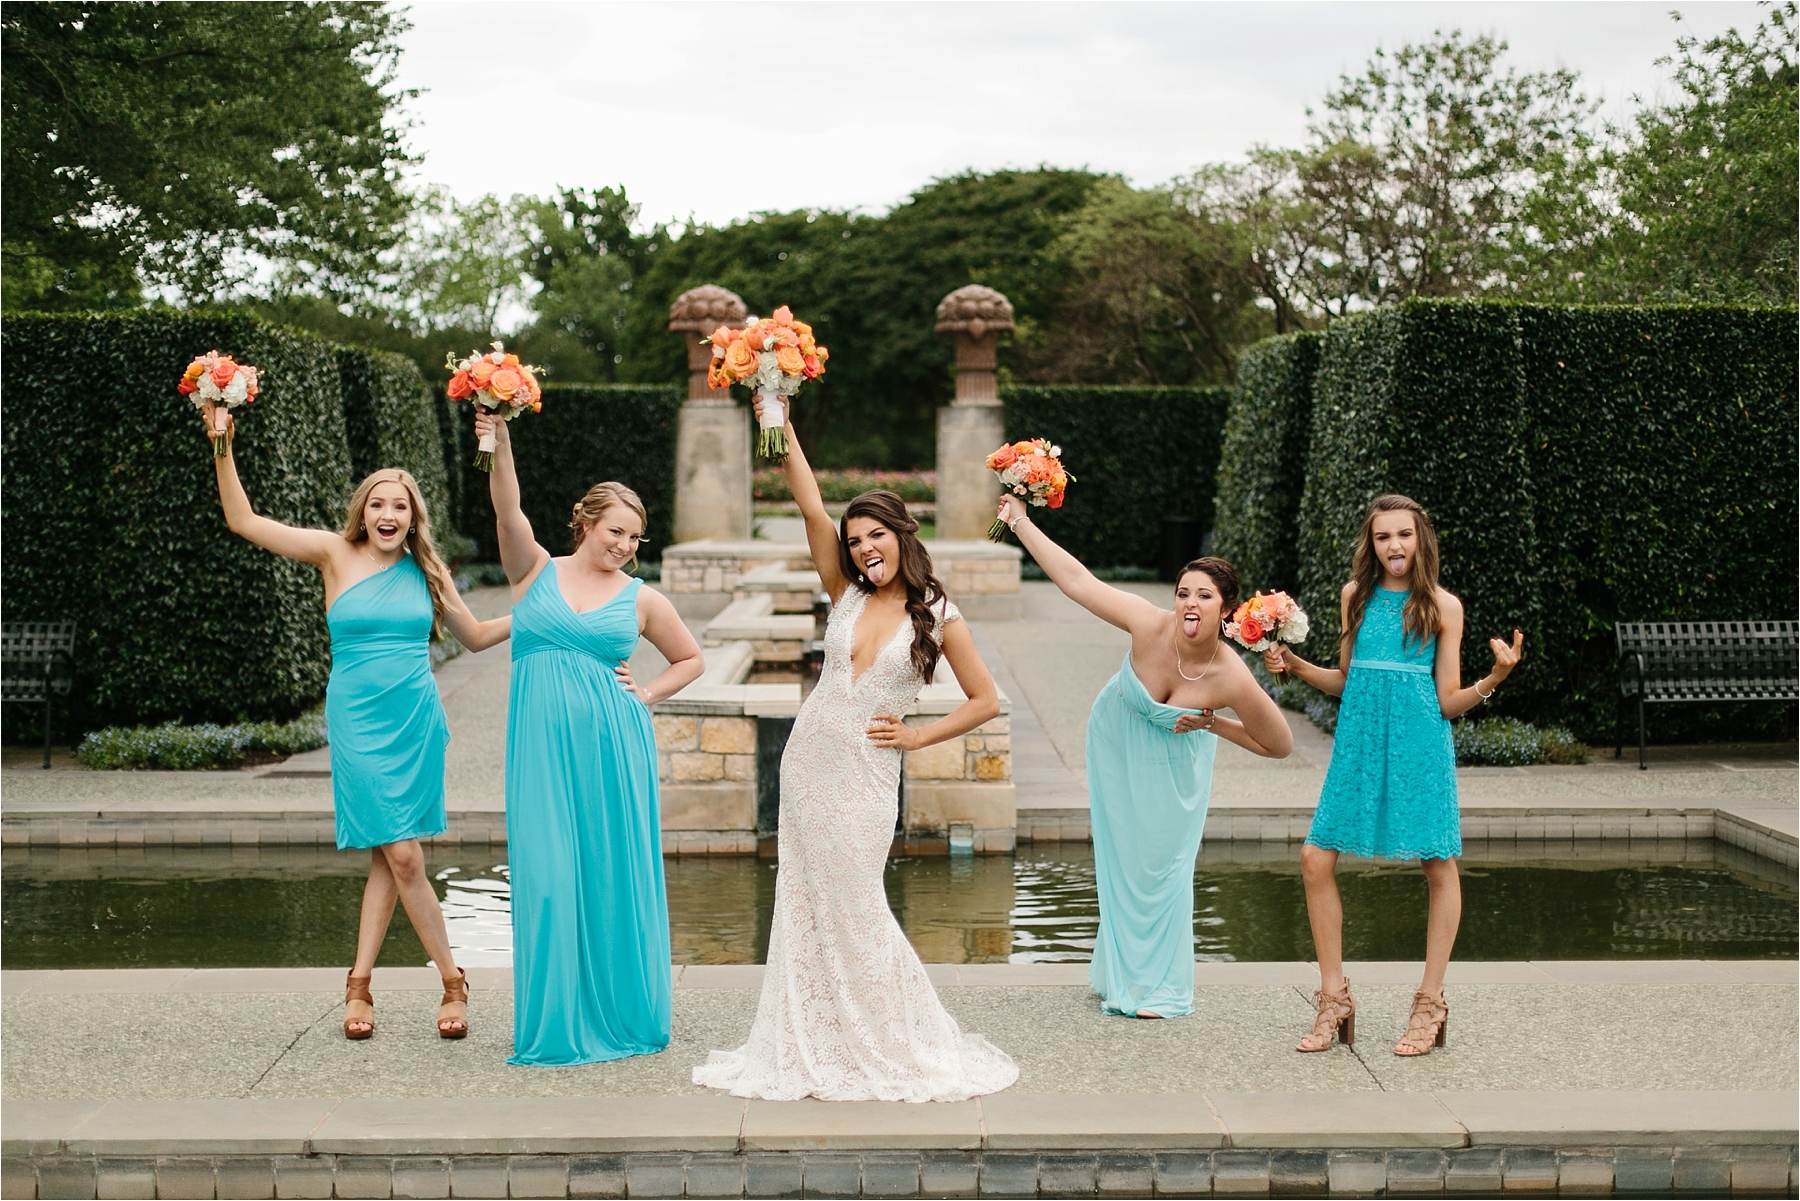 Devyn + Caden __ a Dallas Arboretum Garden Style Wedding by North Texas Wedding Photographer Rachel Meagan Photography __ 064